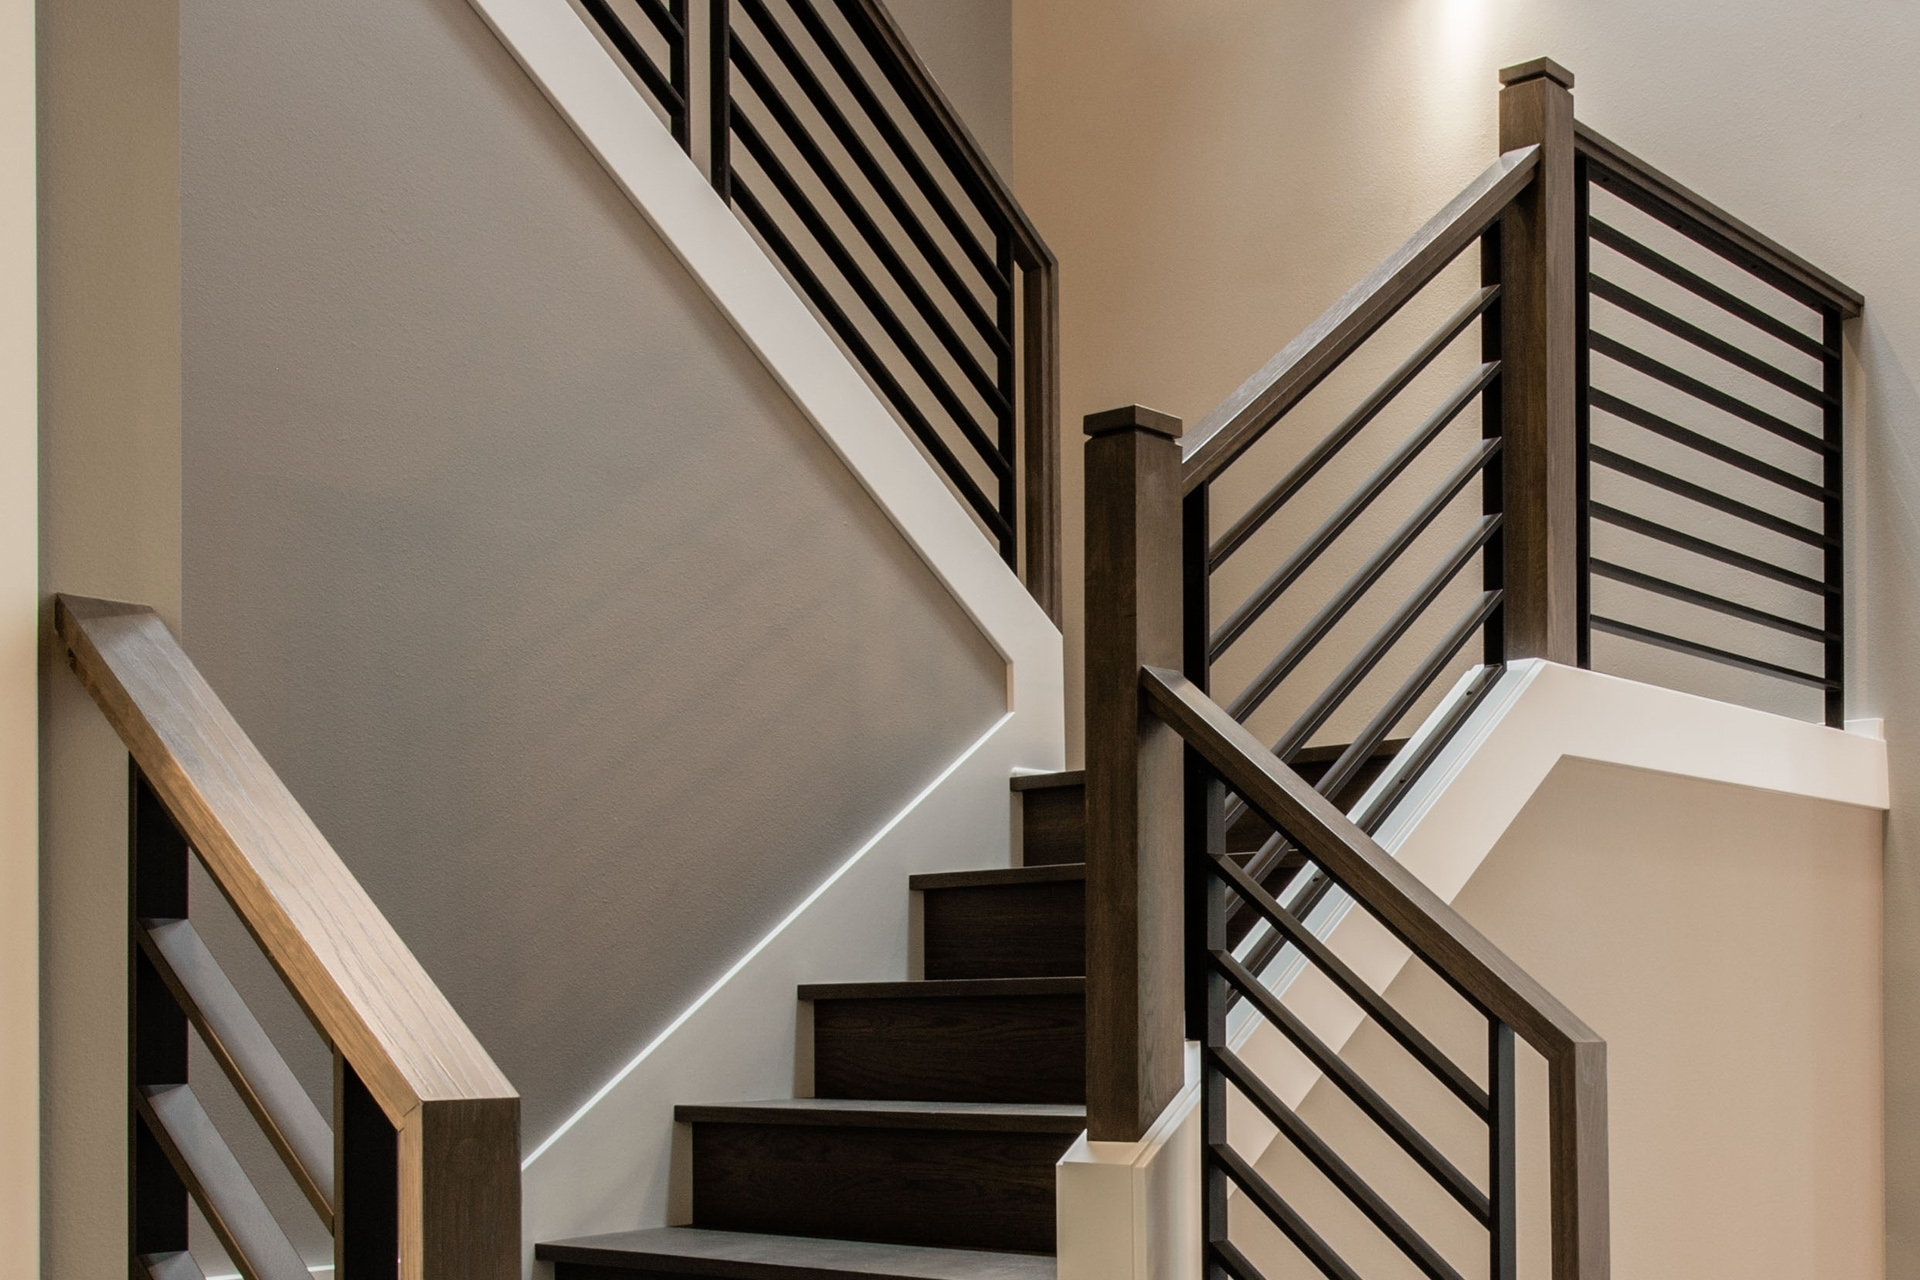 Stair Systems Stairs Stair Parts Newels Balusters And | Stair Railing And Balusters | Brushed Nickel | Free Standing | Inexpensive | Deck | Wood